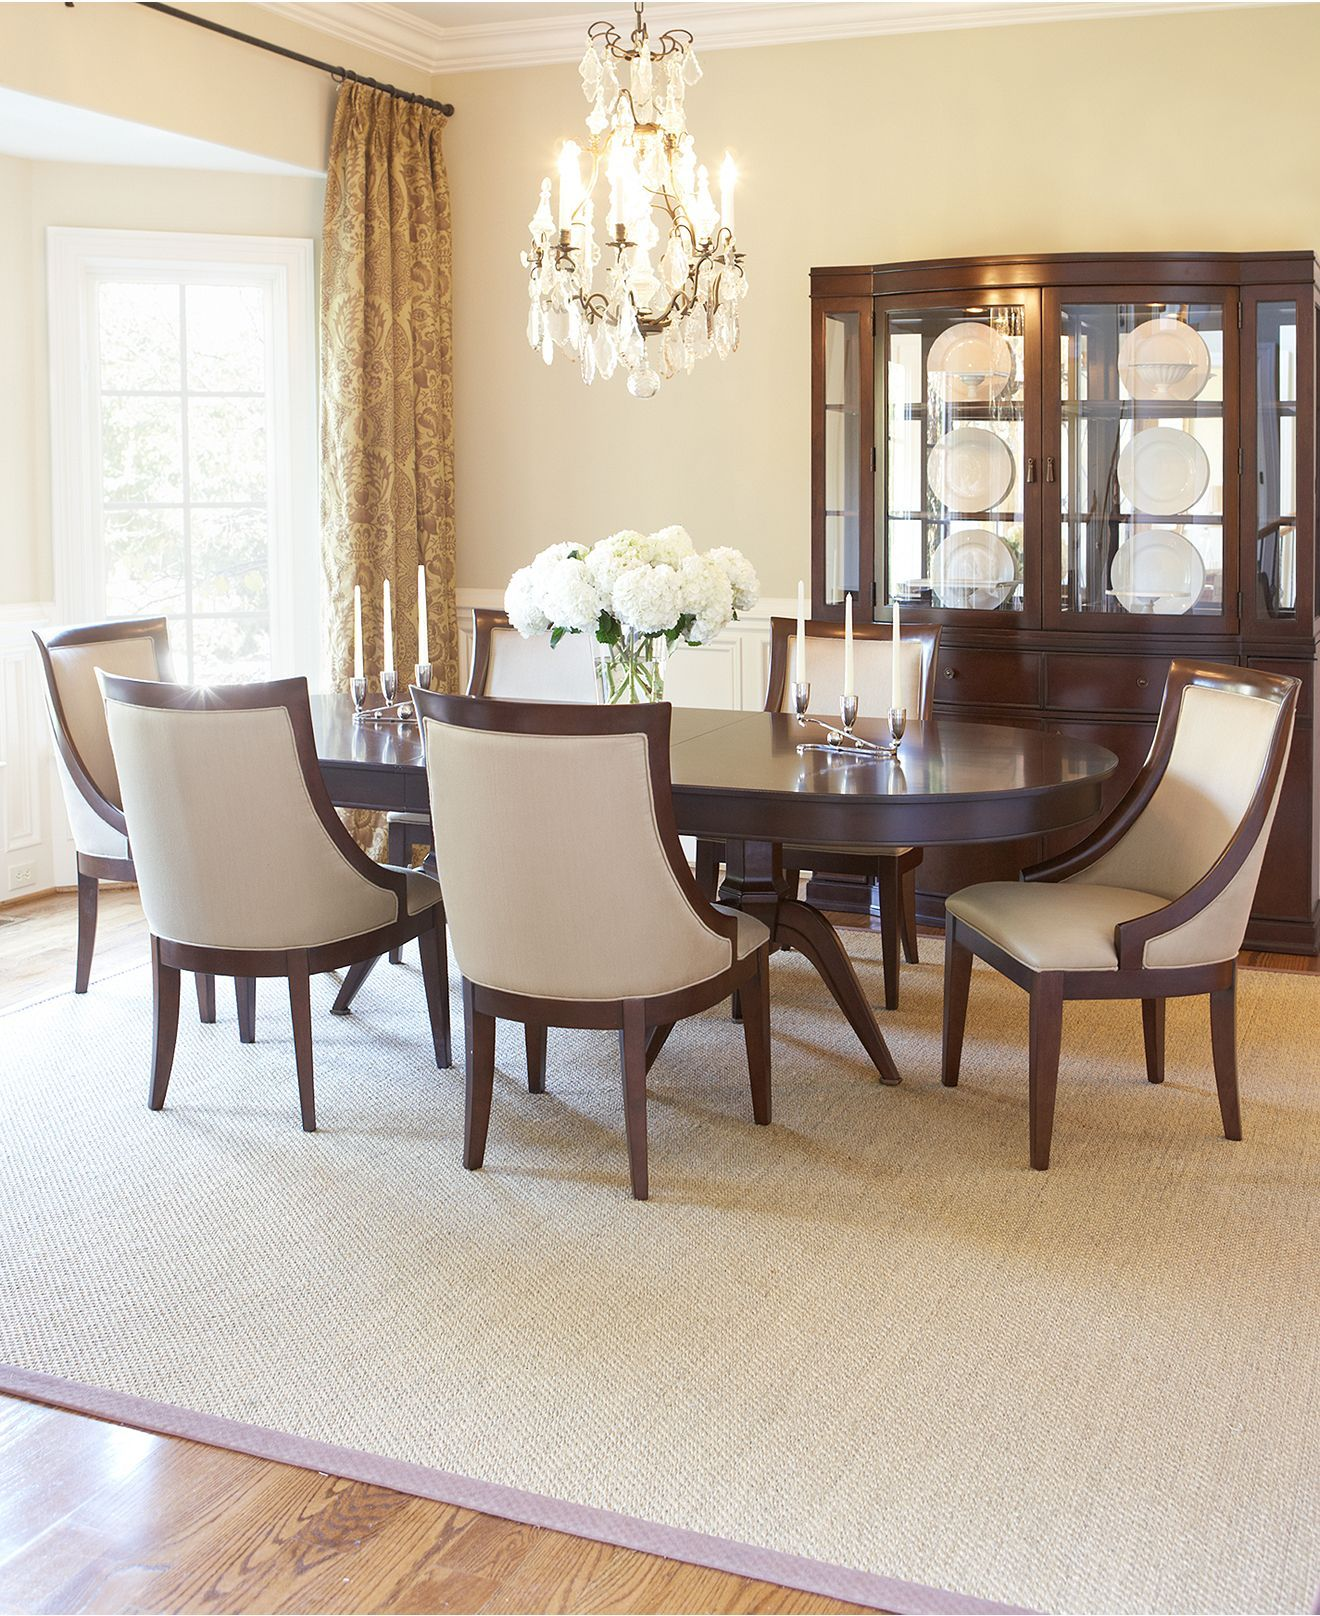 martha stewart dining room furniture larousse furniture